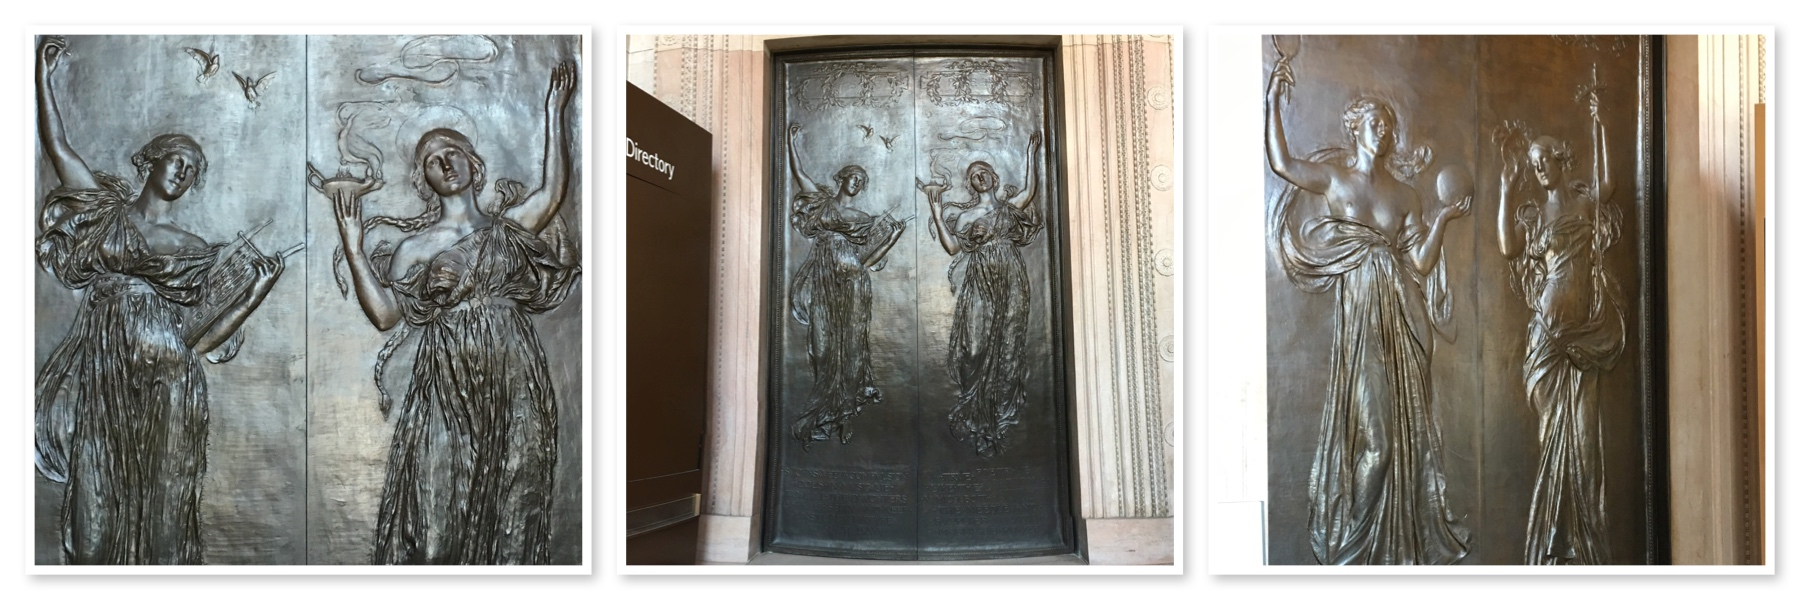 Click on image for a larger version. & Boston Public Library Bronze Doors